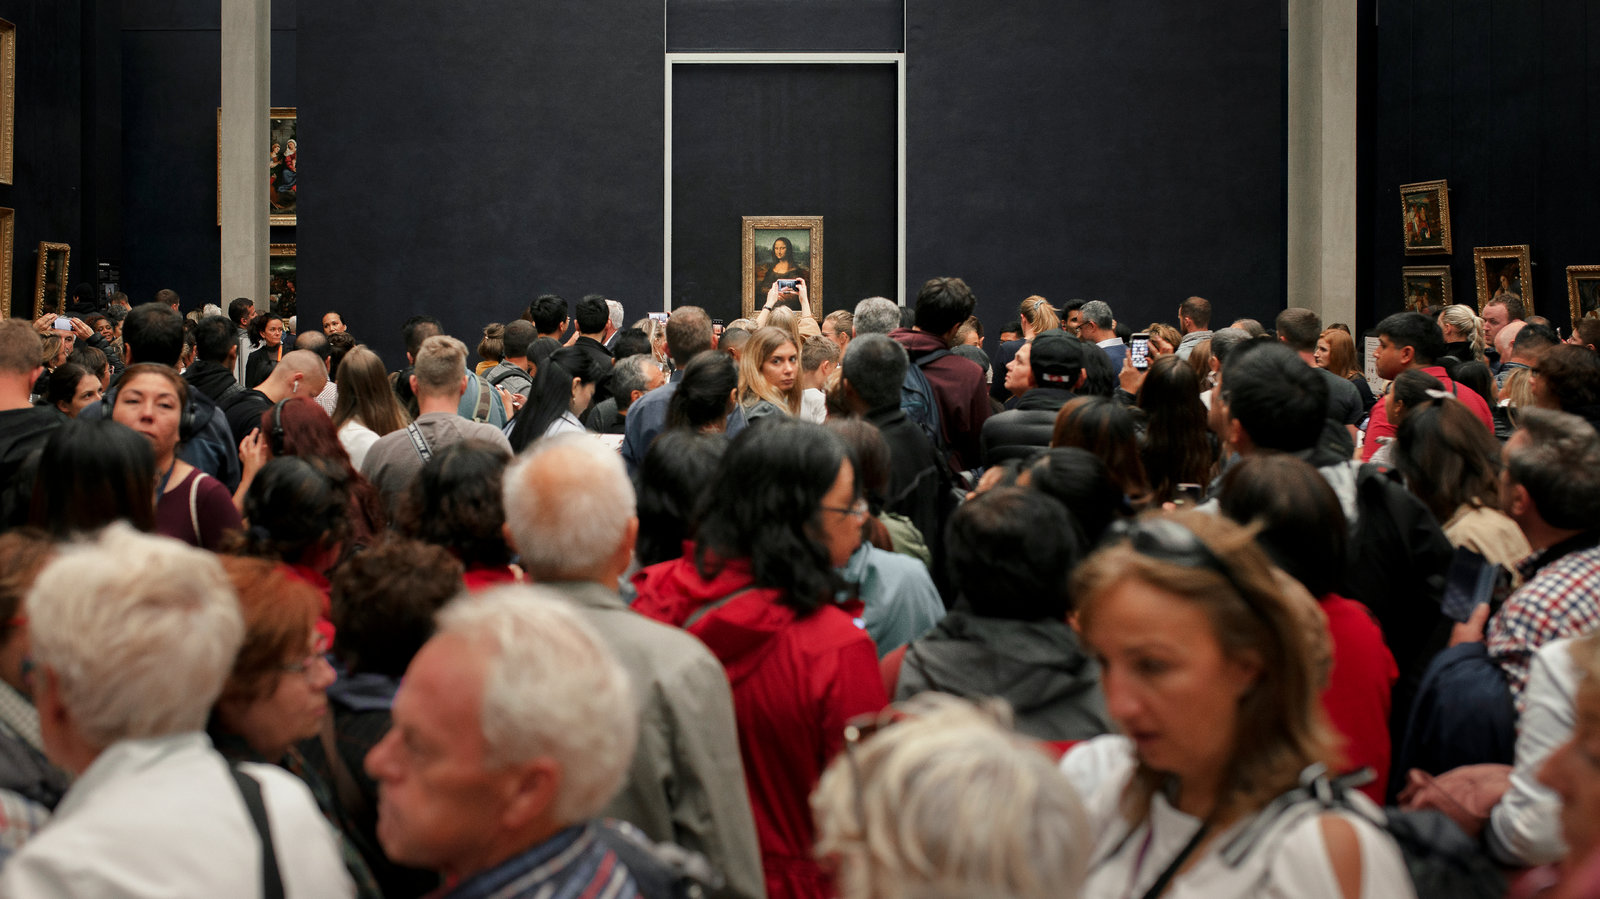 Visitors to the Louvre to see the Mona Lisa on Oct. 24. Each day, 30,000 people pass through the gallery where Leonardo's painting hangs, according to the museum's director.Credit...Elliott Verdier for The New York Times